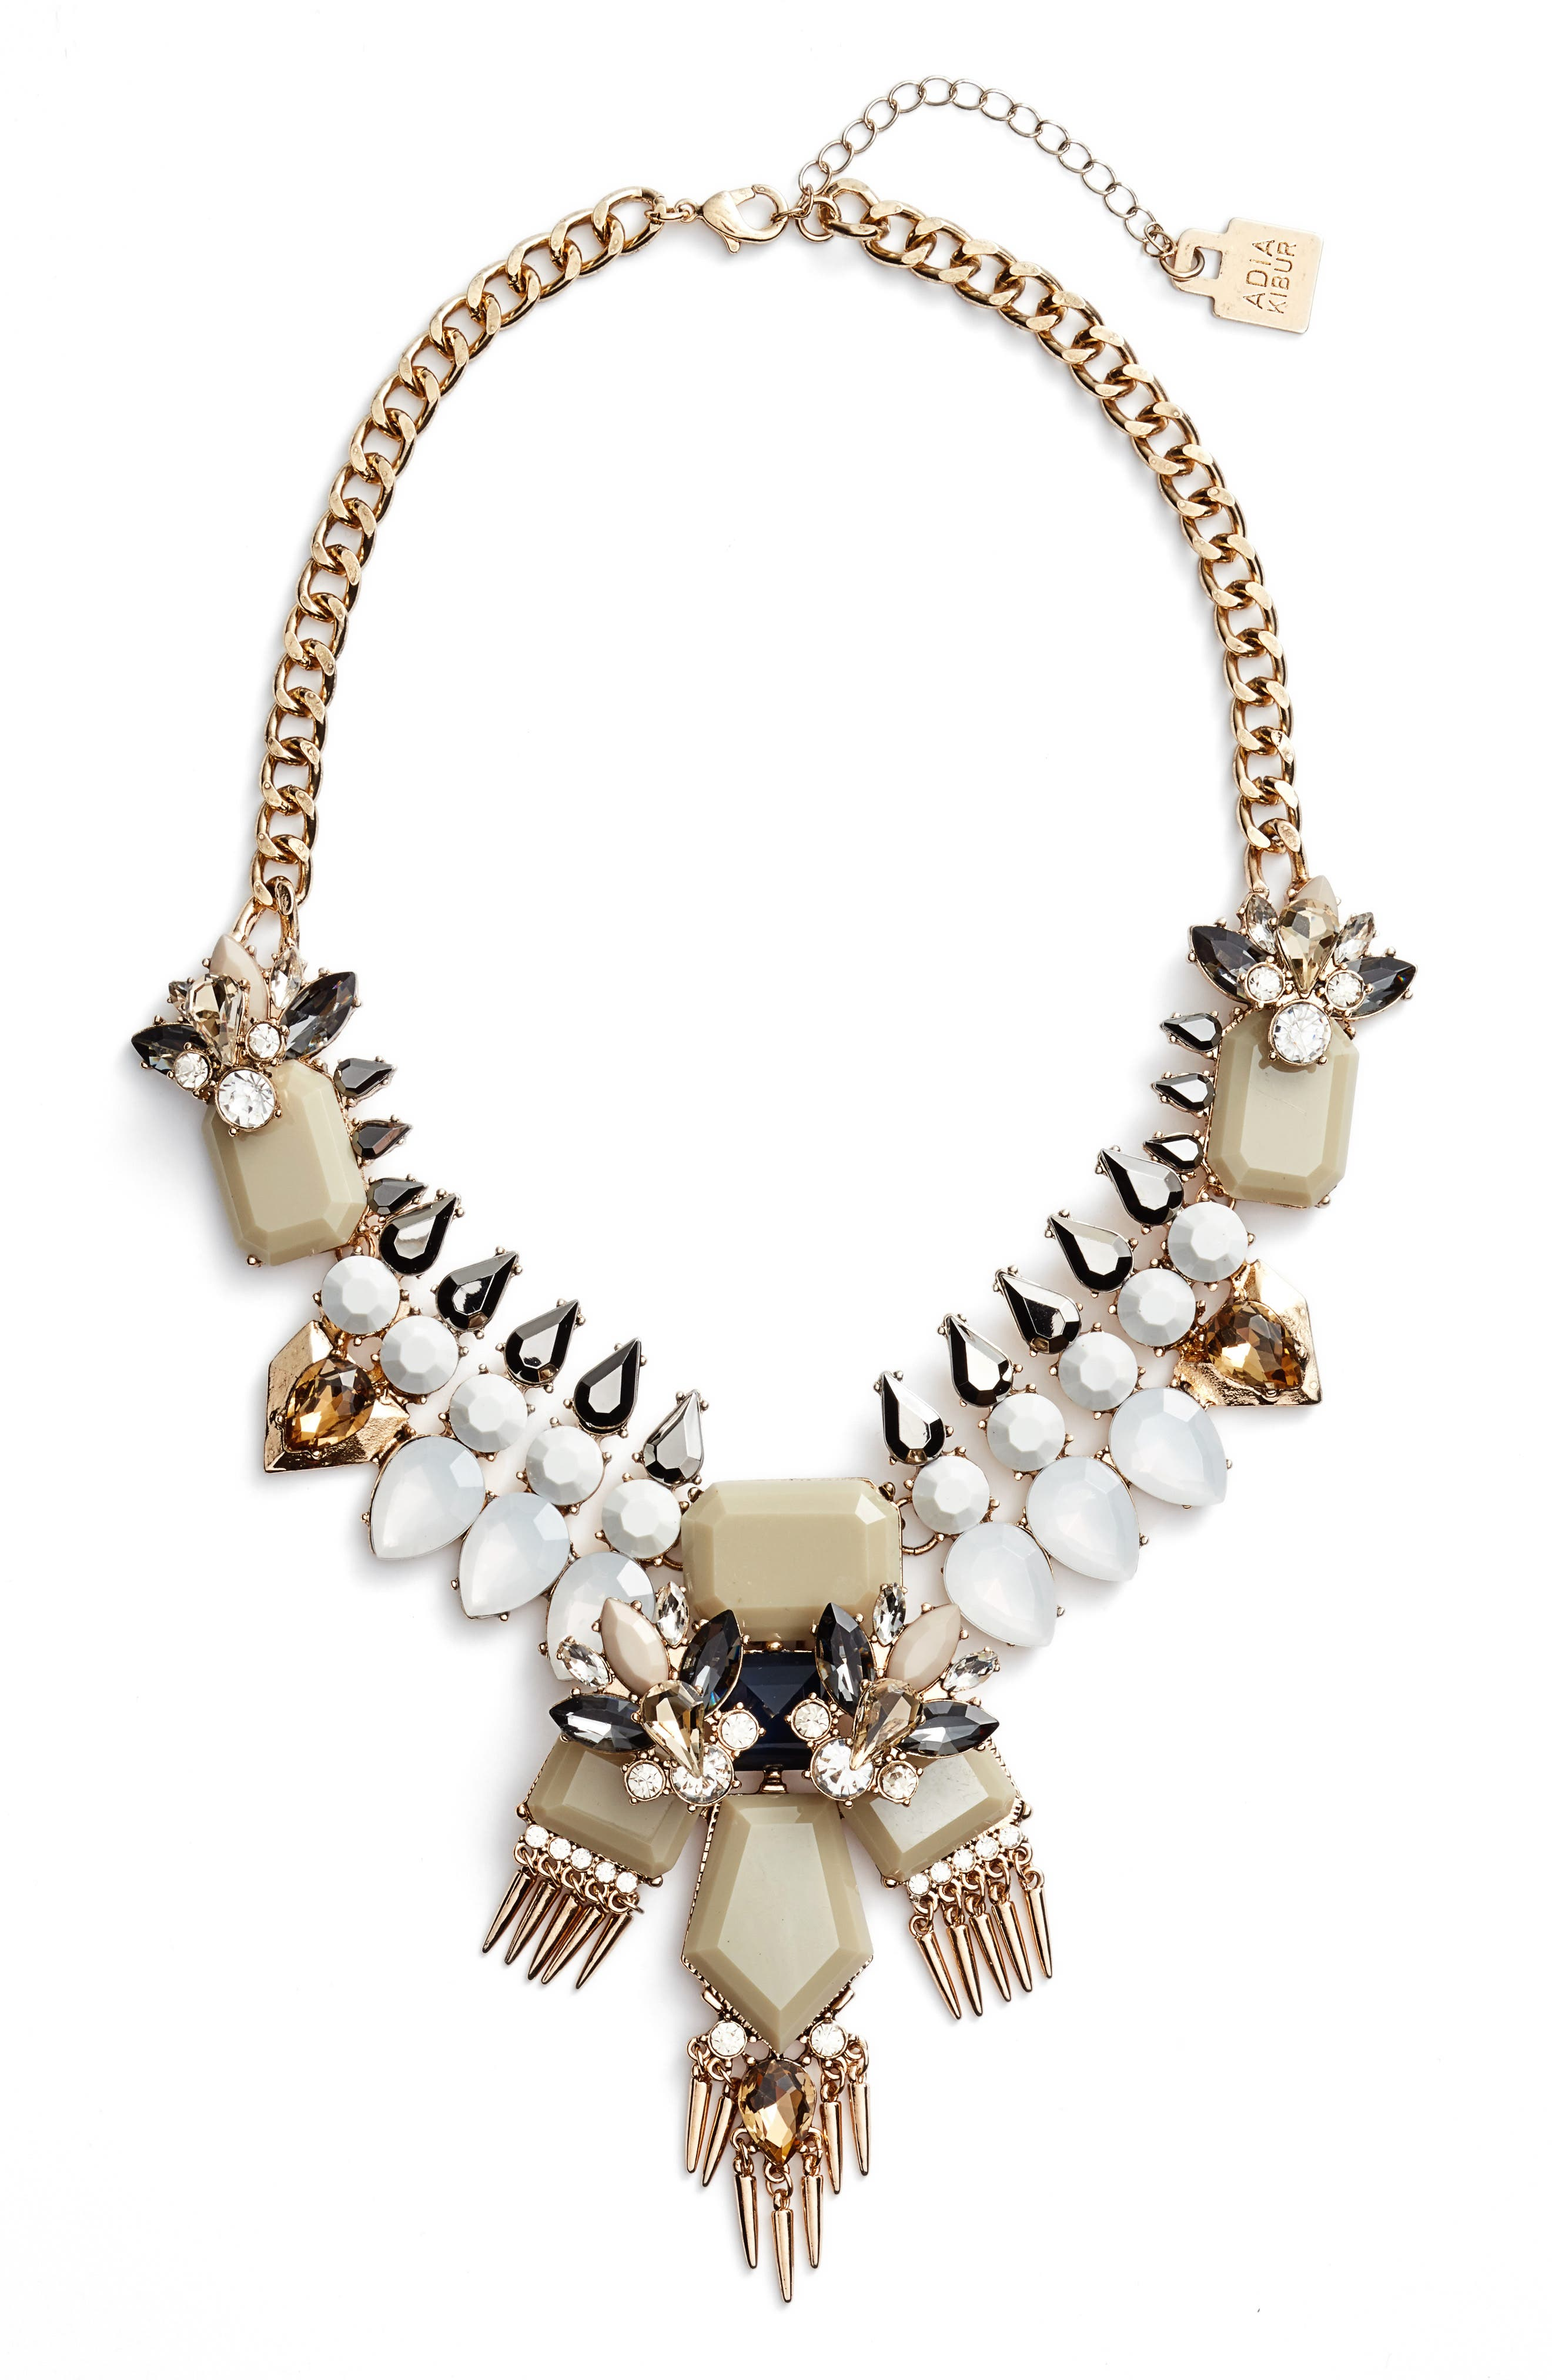 Crystal & Spike Statement Necklace,                             Main thumbnail 1, color,                             250